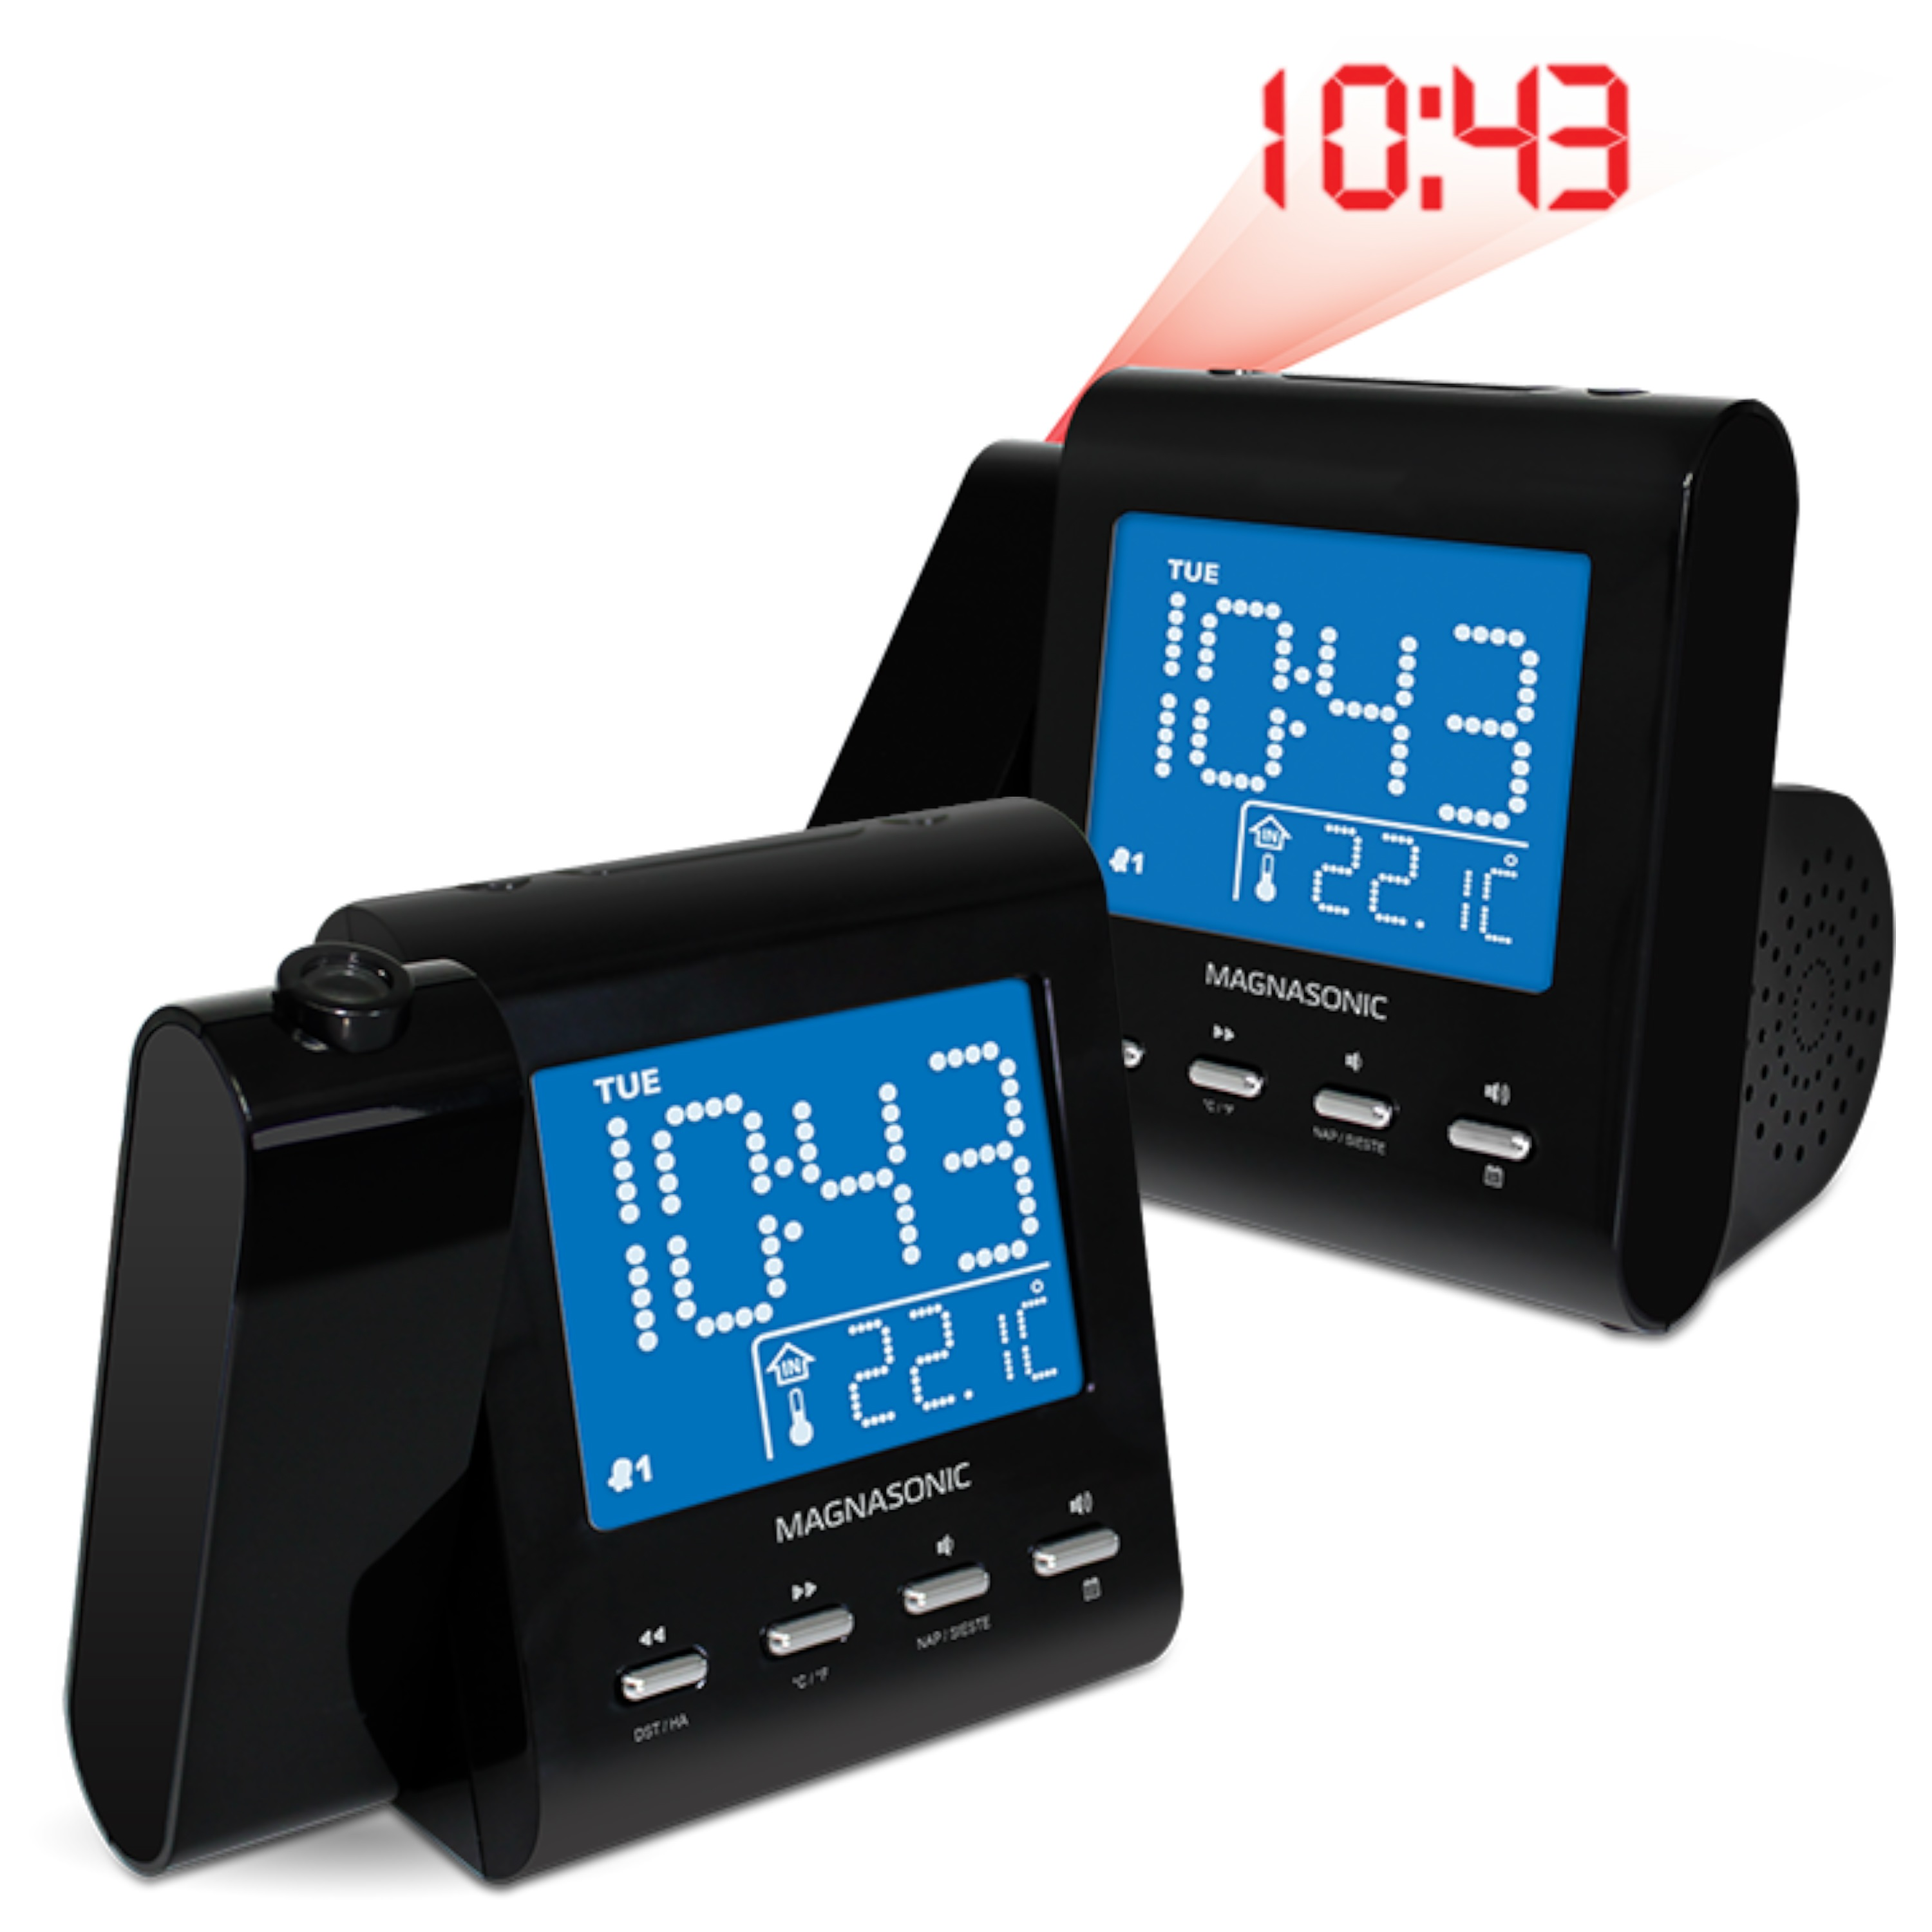 Magnasonic Projection Alarm Clock with AM/FM Radio, Battery Backup, Auto Time Set, Dual Alarm, Sleep Timer, Indoor Temperature/Day/Date Display with Dimming & Audio Input for Smartphones - 2 Pack